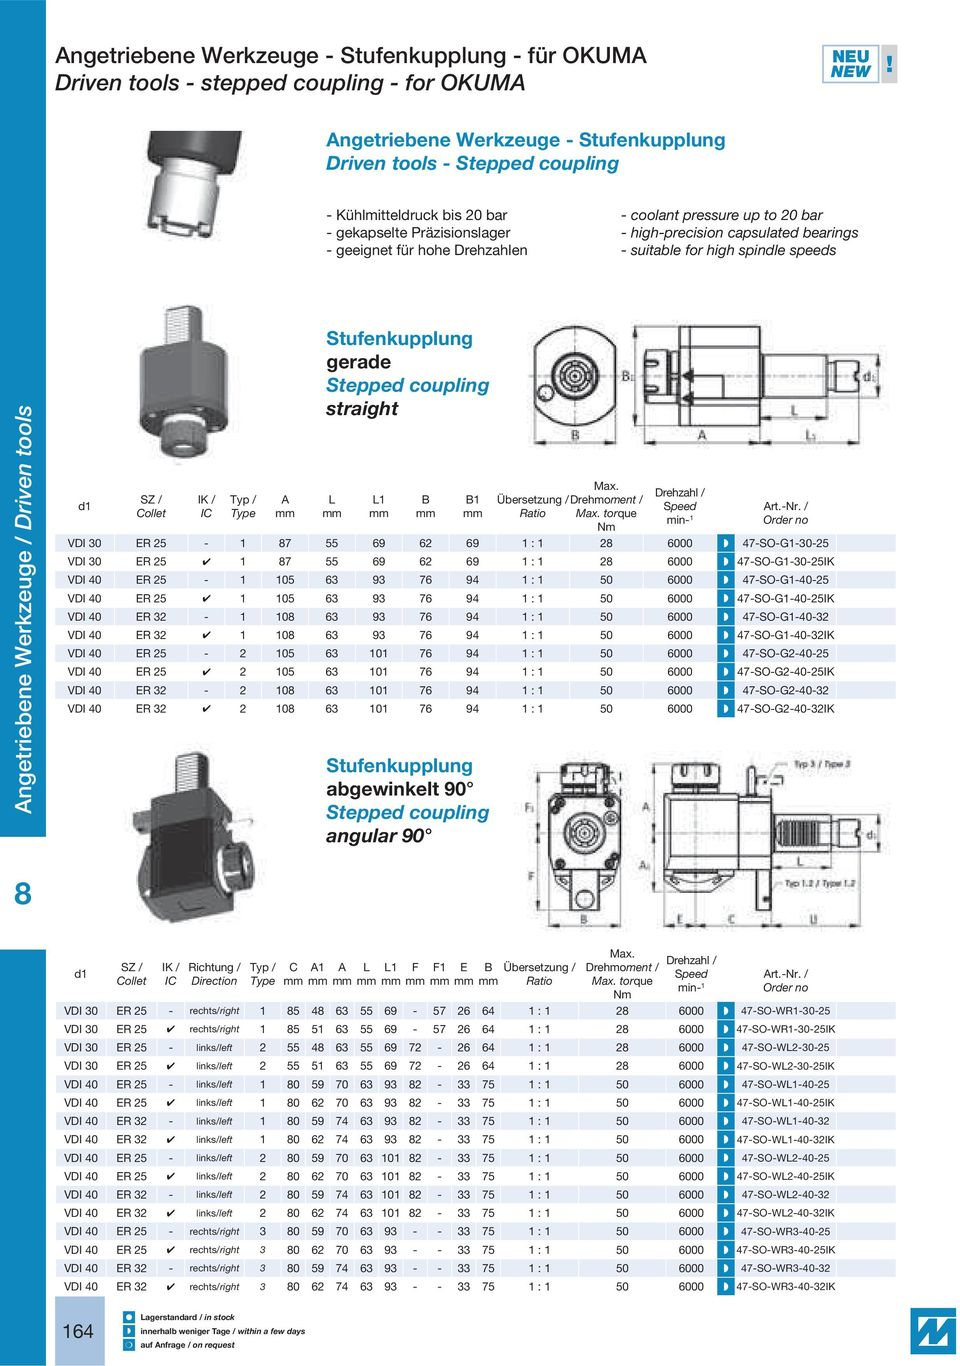 high-precision capsulated bearings - suitable for high spindle speeds ngetriebene Werkzeuge / Driven tools Typ / Type Stufenkupplung gerade Stepped coupling straight 1 1 torque min- 1 rt.-nr.